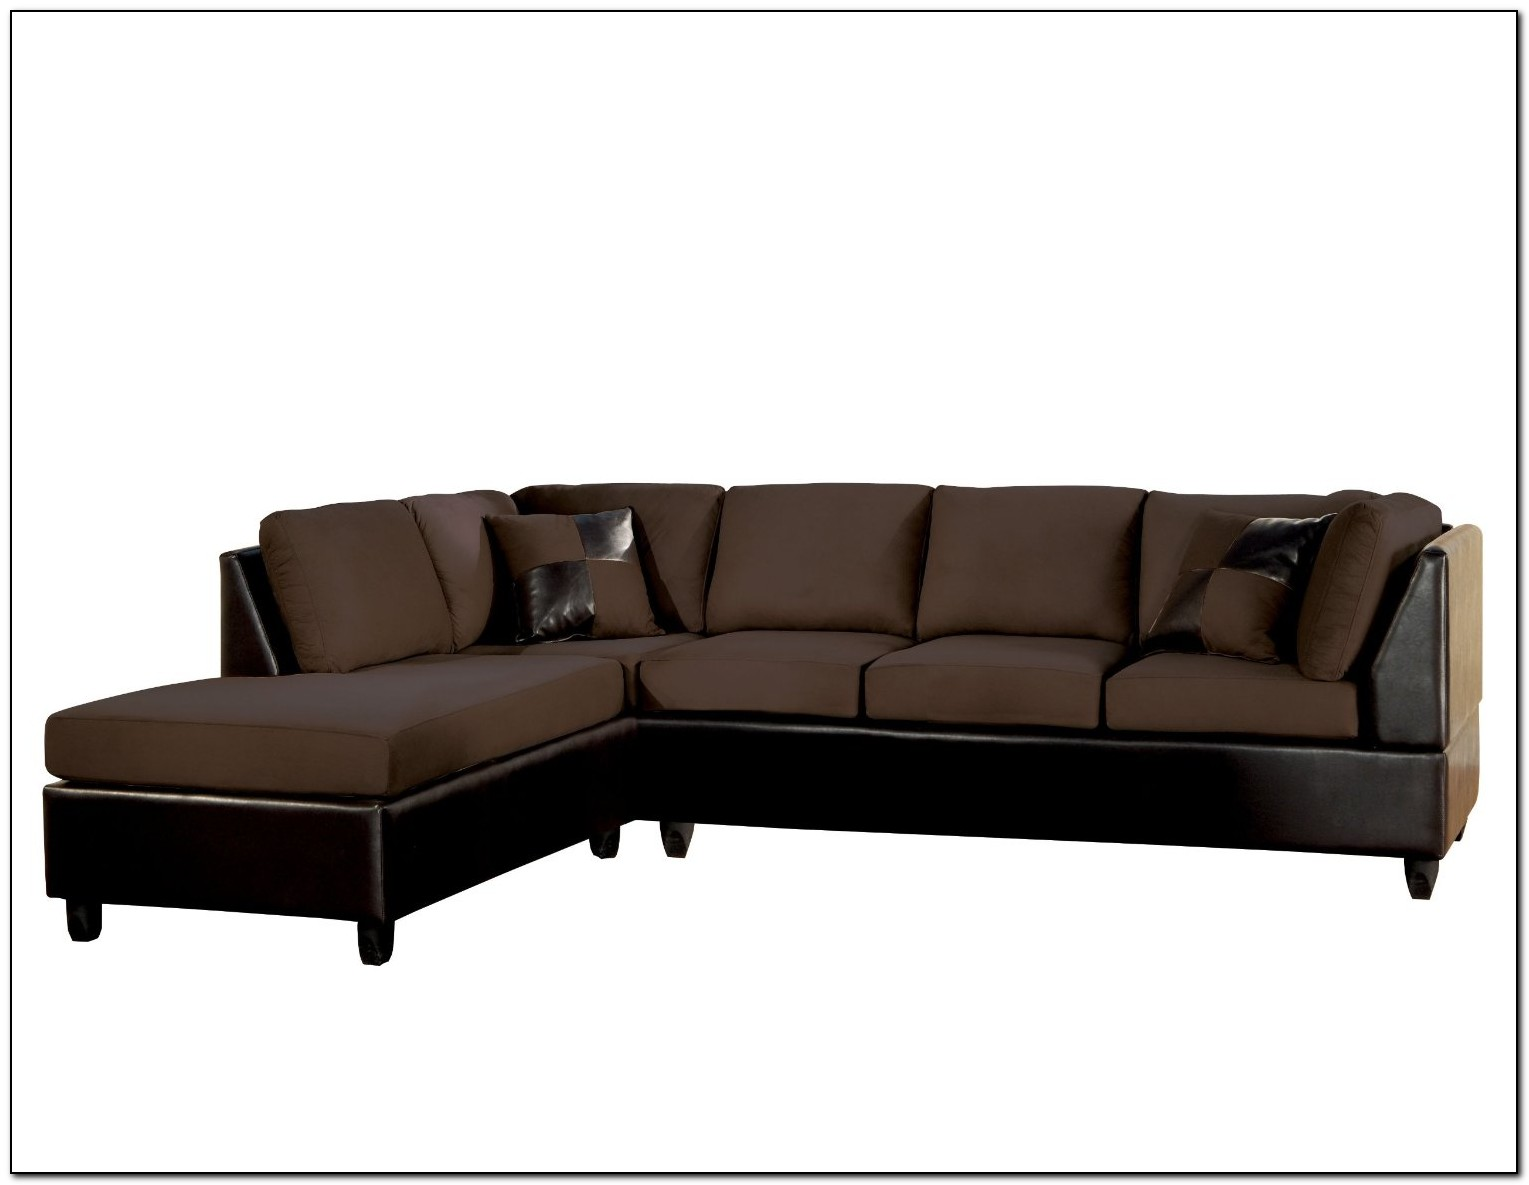 Best Sectional Sofa Sleeper Download Page Home Design Ideas Galleries Home Design Ideas Guide